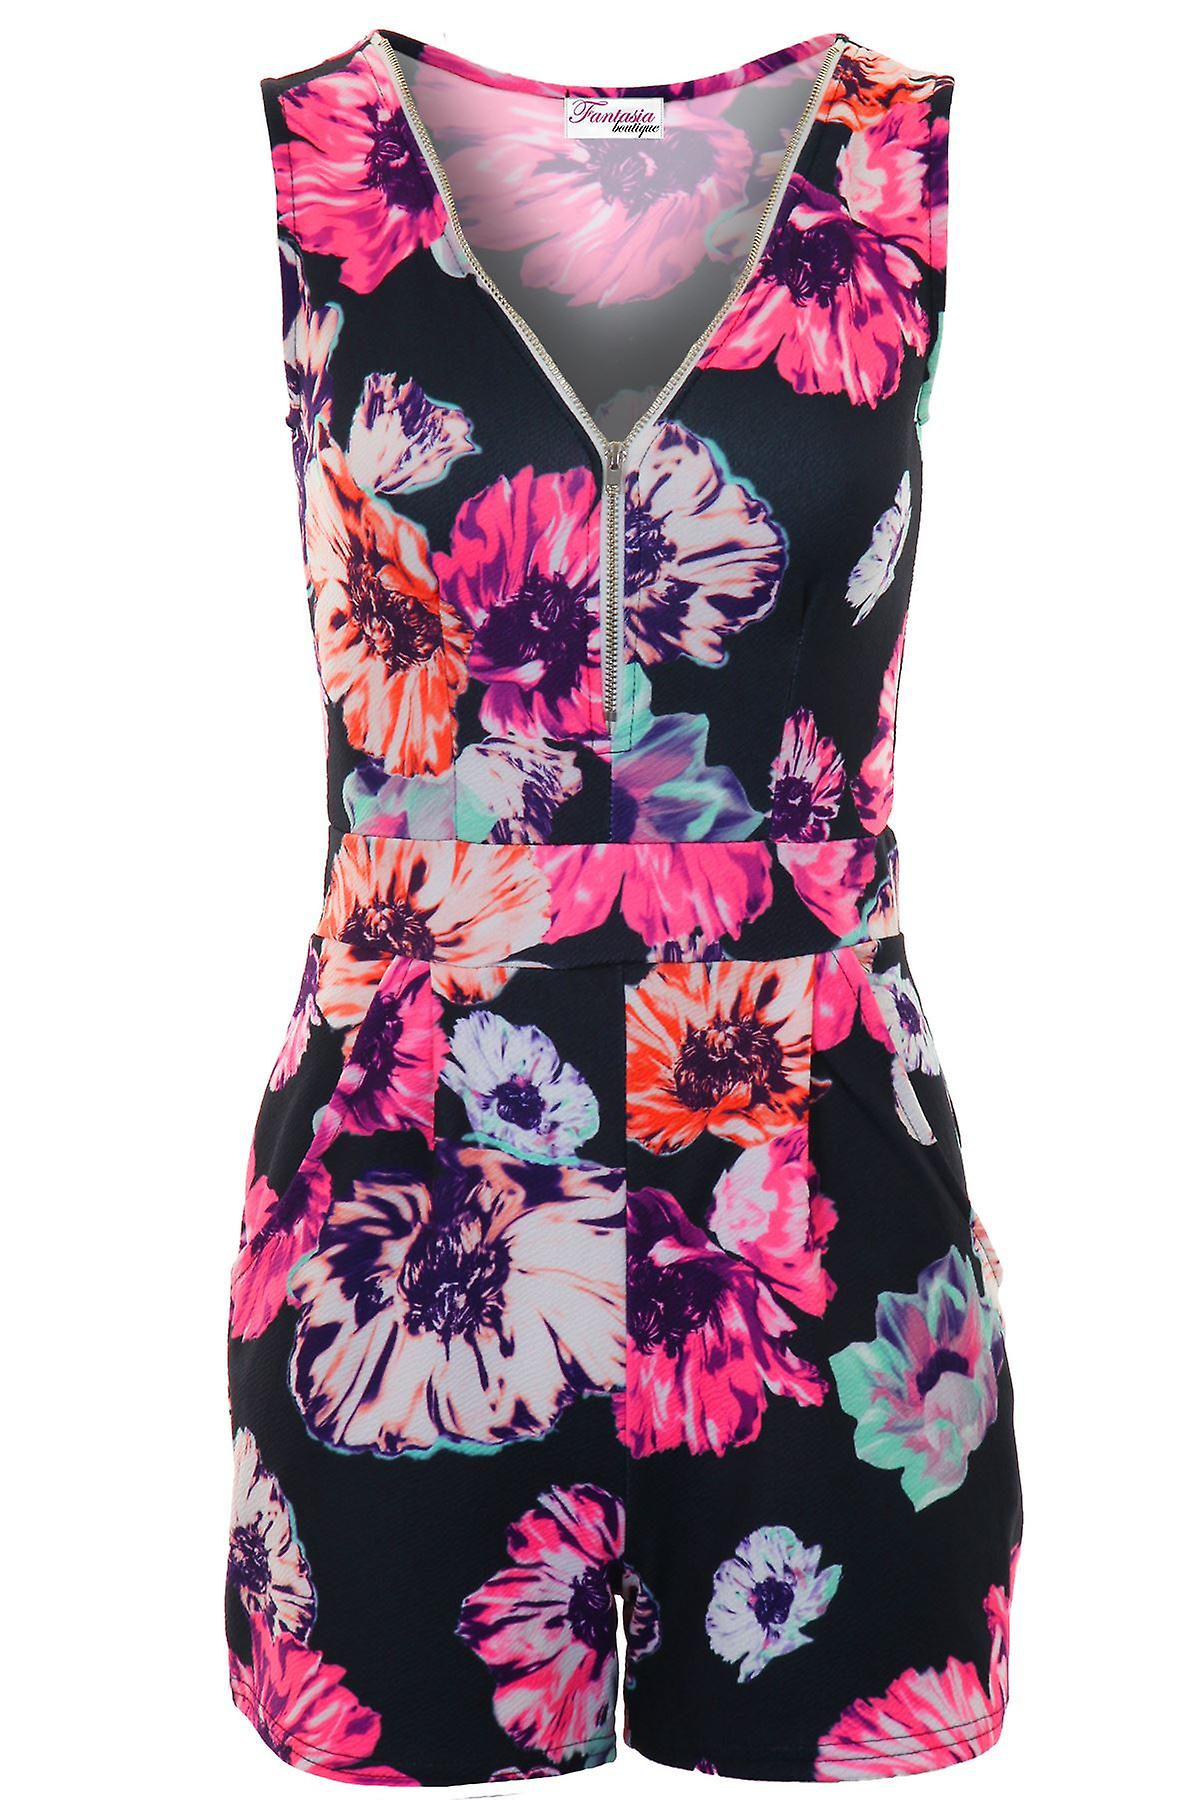 Ladies Sleeveless Zip Front V Neck Floral Pleated Crepe All In One Romper Playsuit